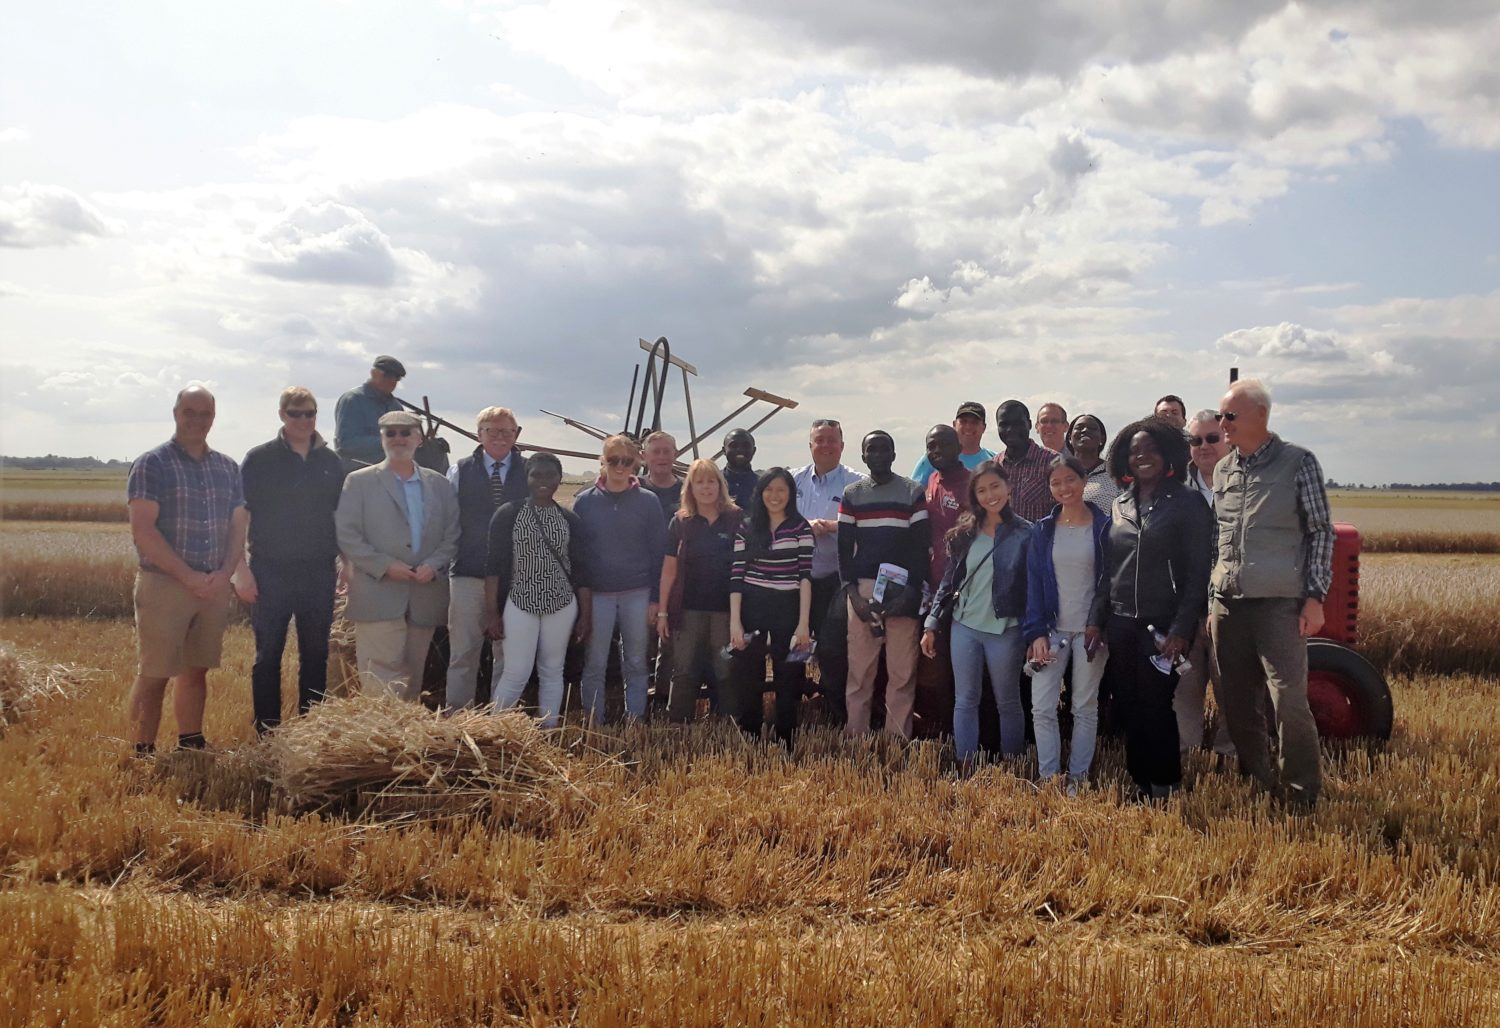 International students visit the farming Fen in quest to help developing countries grow out of hunger